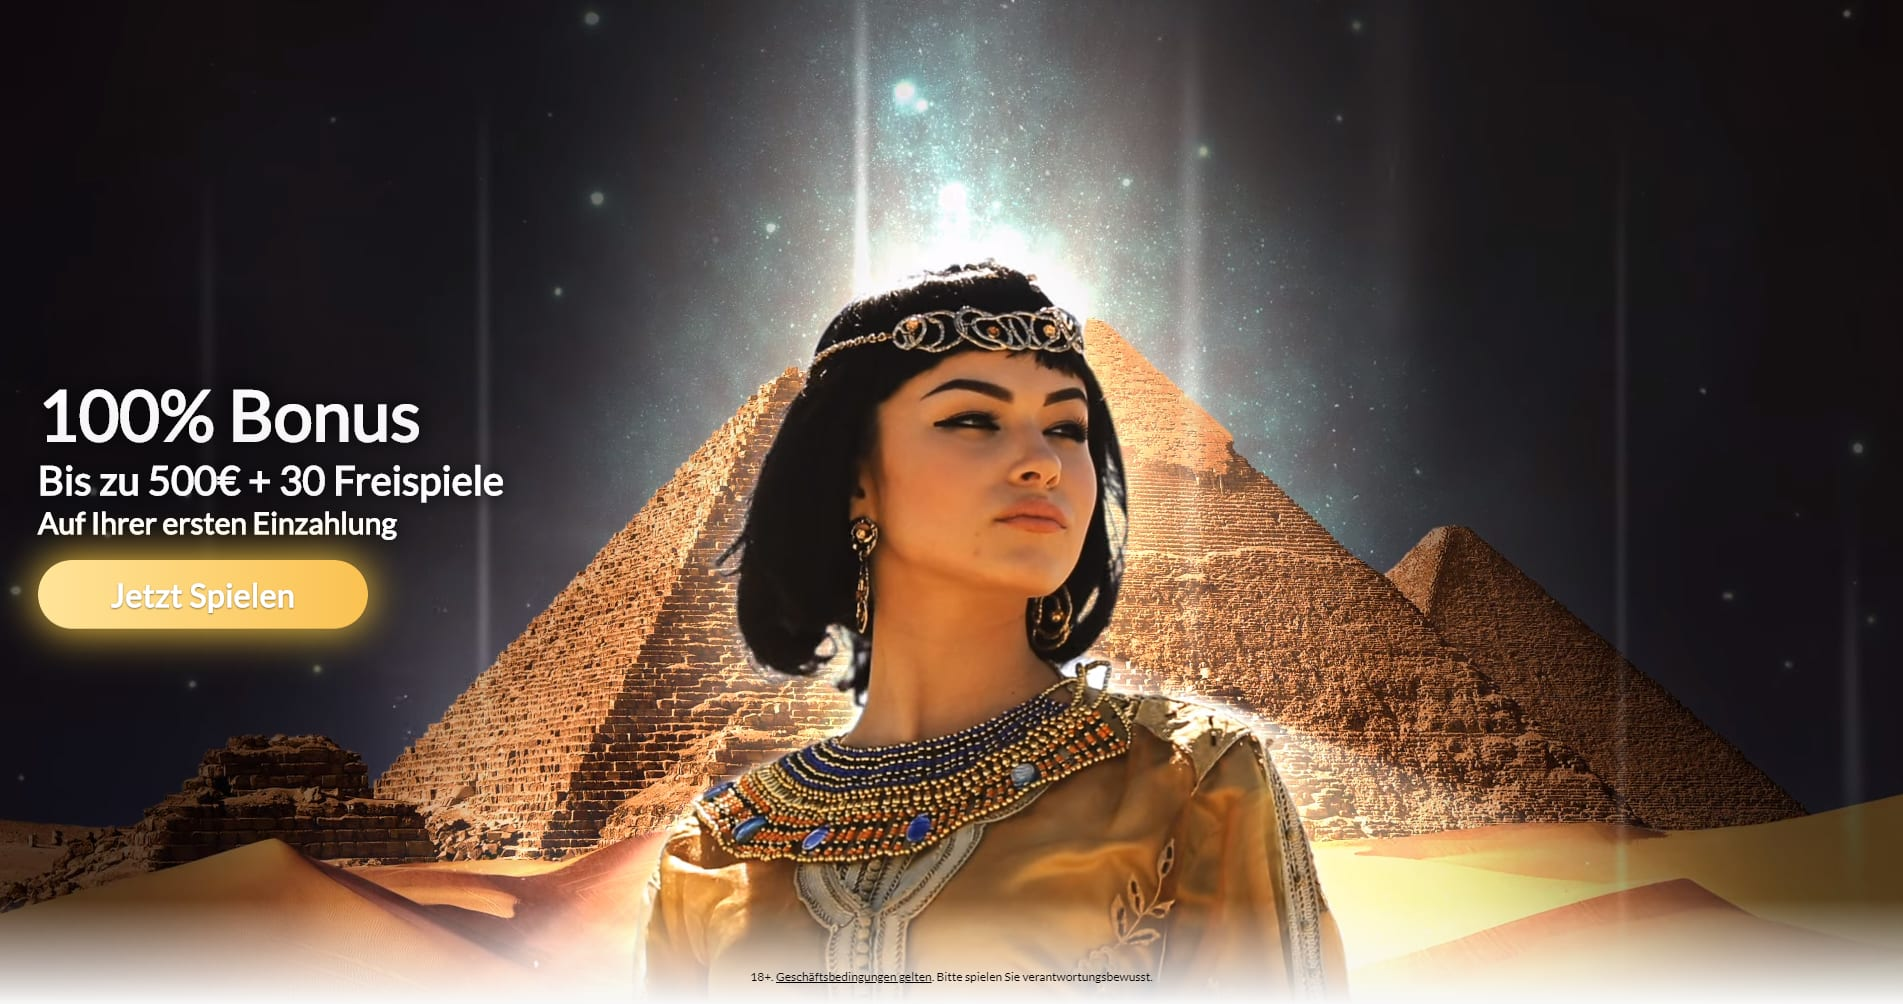 Temple Nile Casino Content Images - Germany CasinoTop